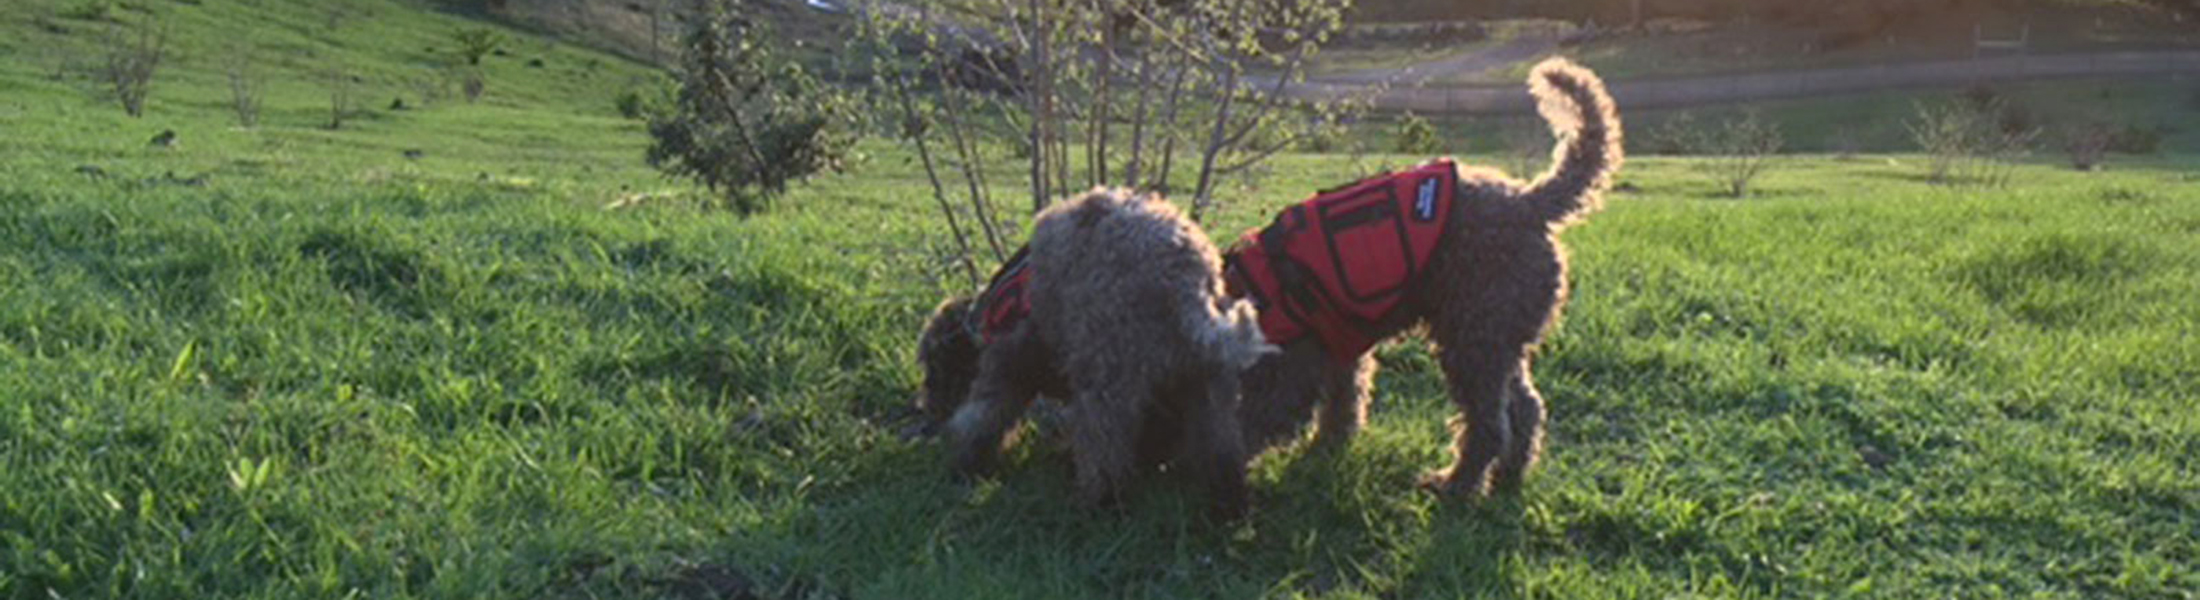 Truffle Dog Trainning